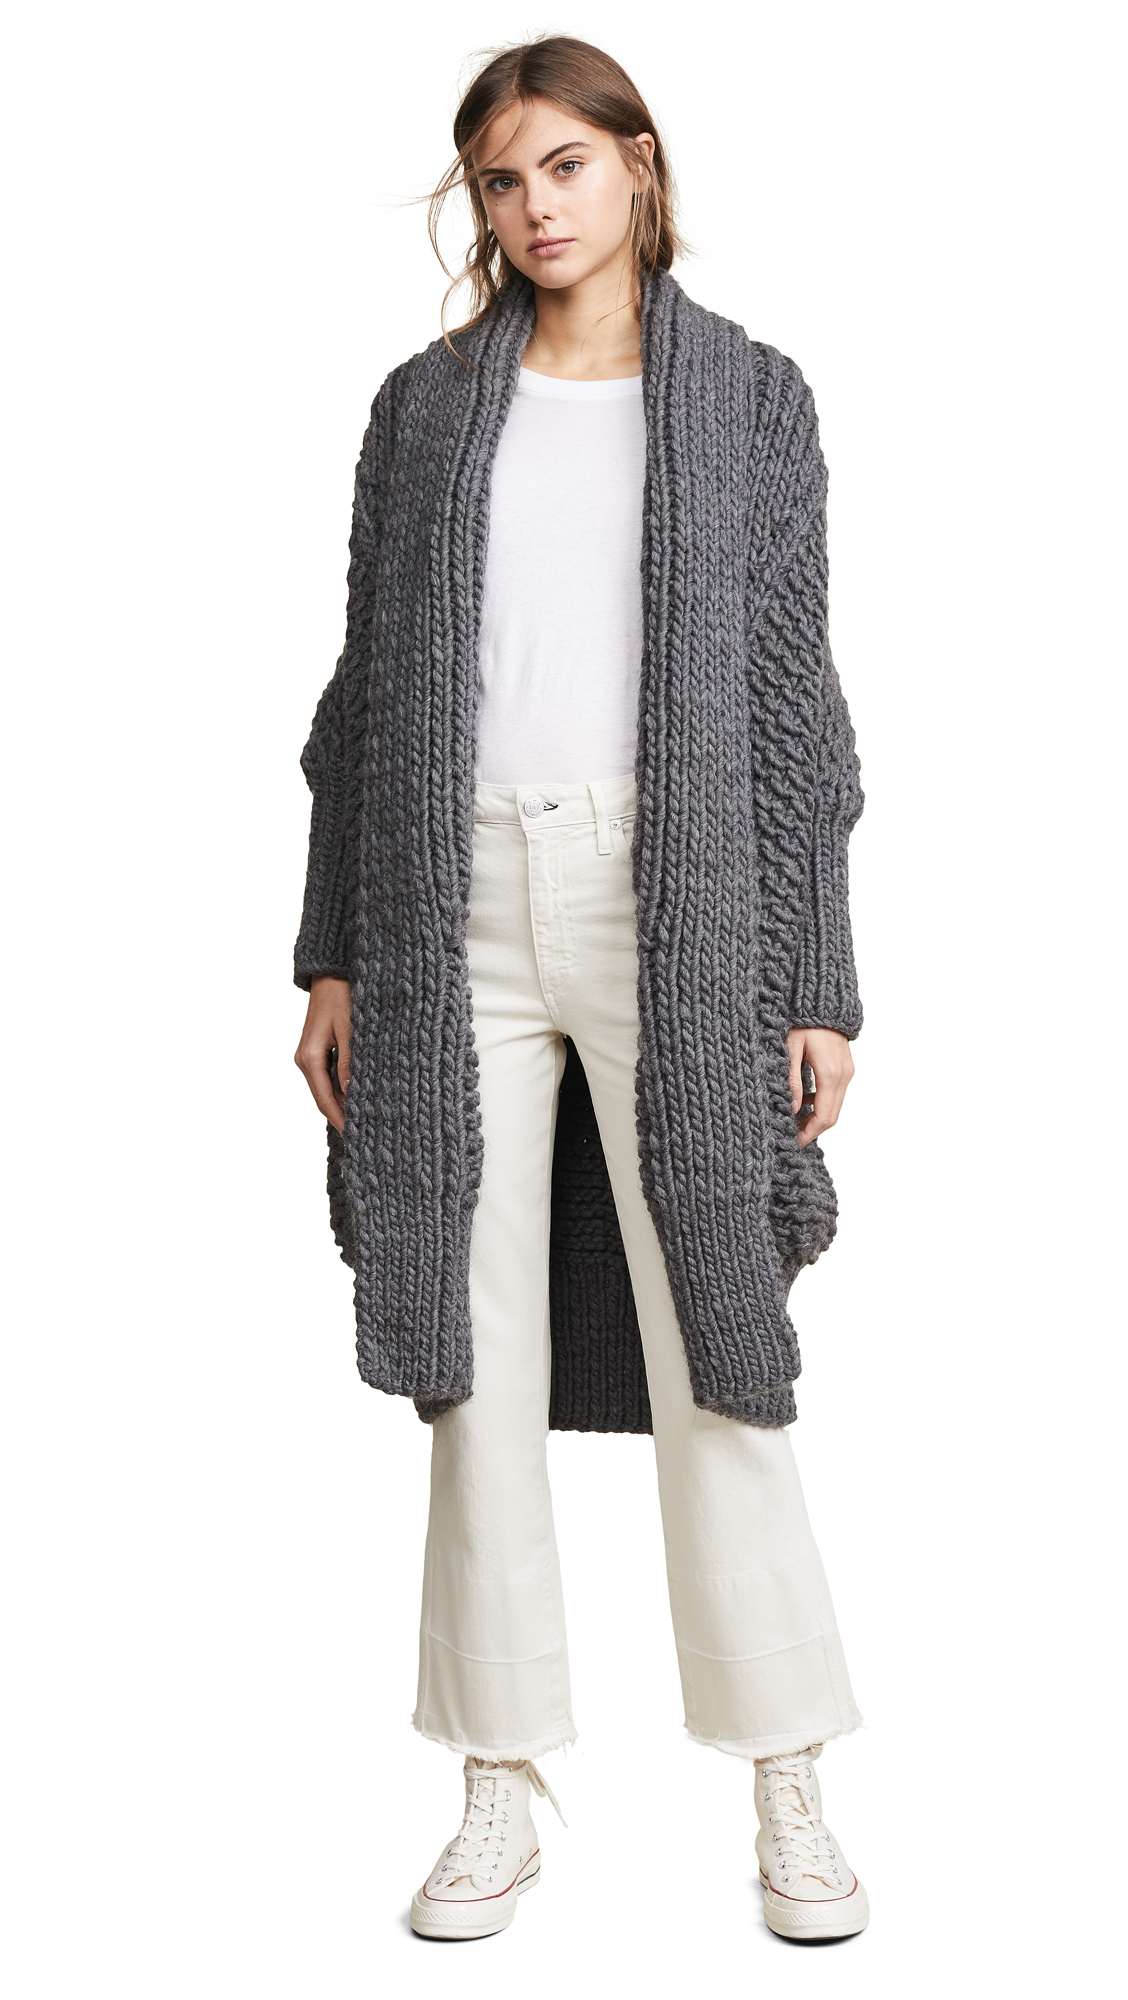 I LOVE MR. MITTENS Pearl Stitch Cardigan in Charcoal